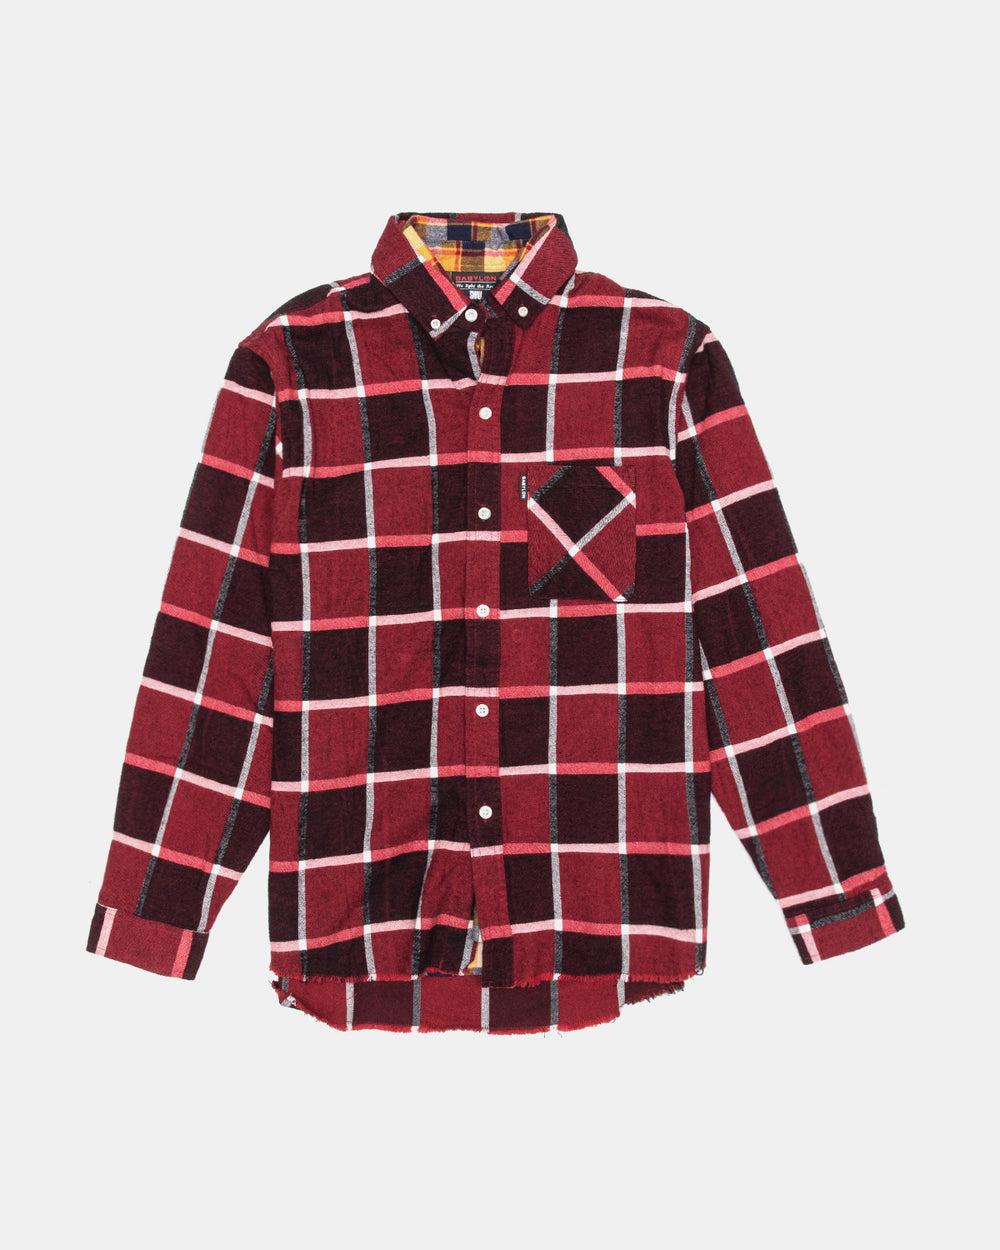 Babylon LA - Double Layer Shirt (Red)